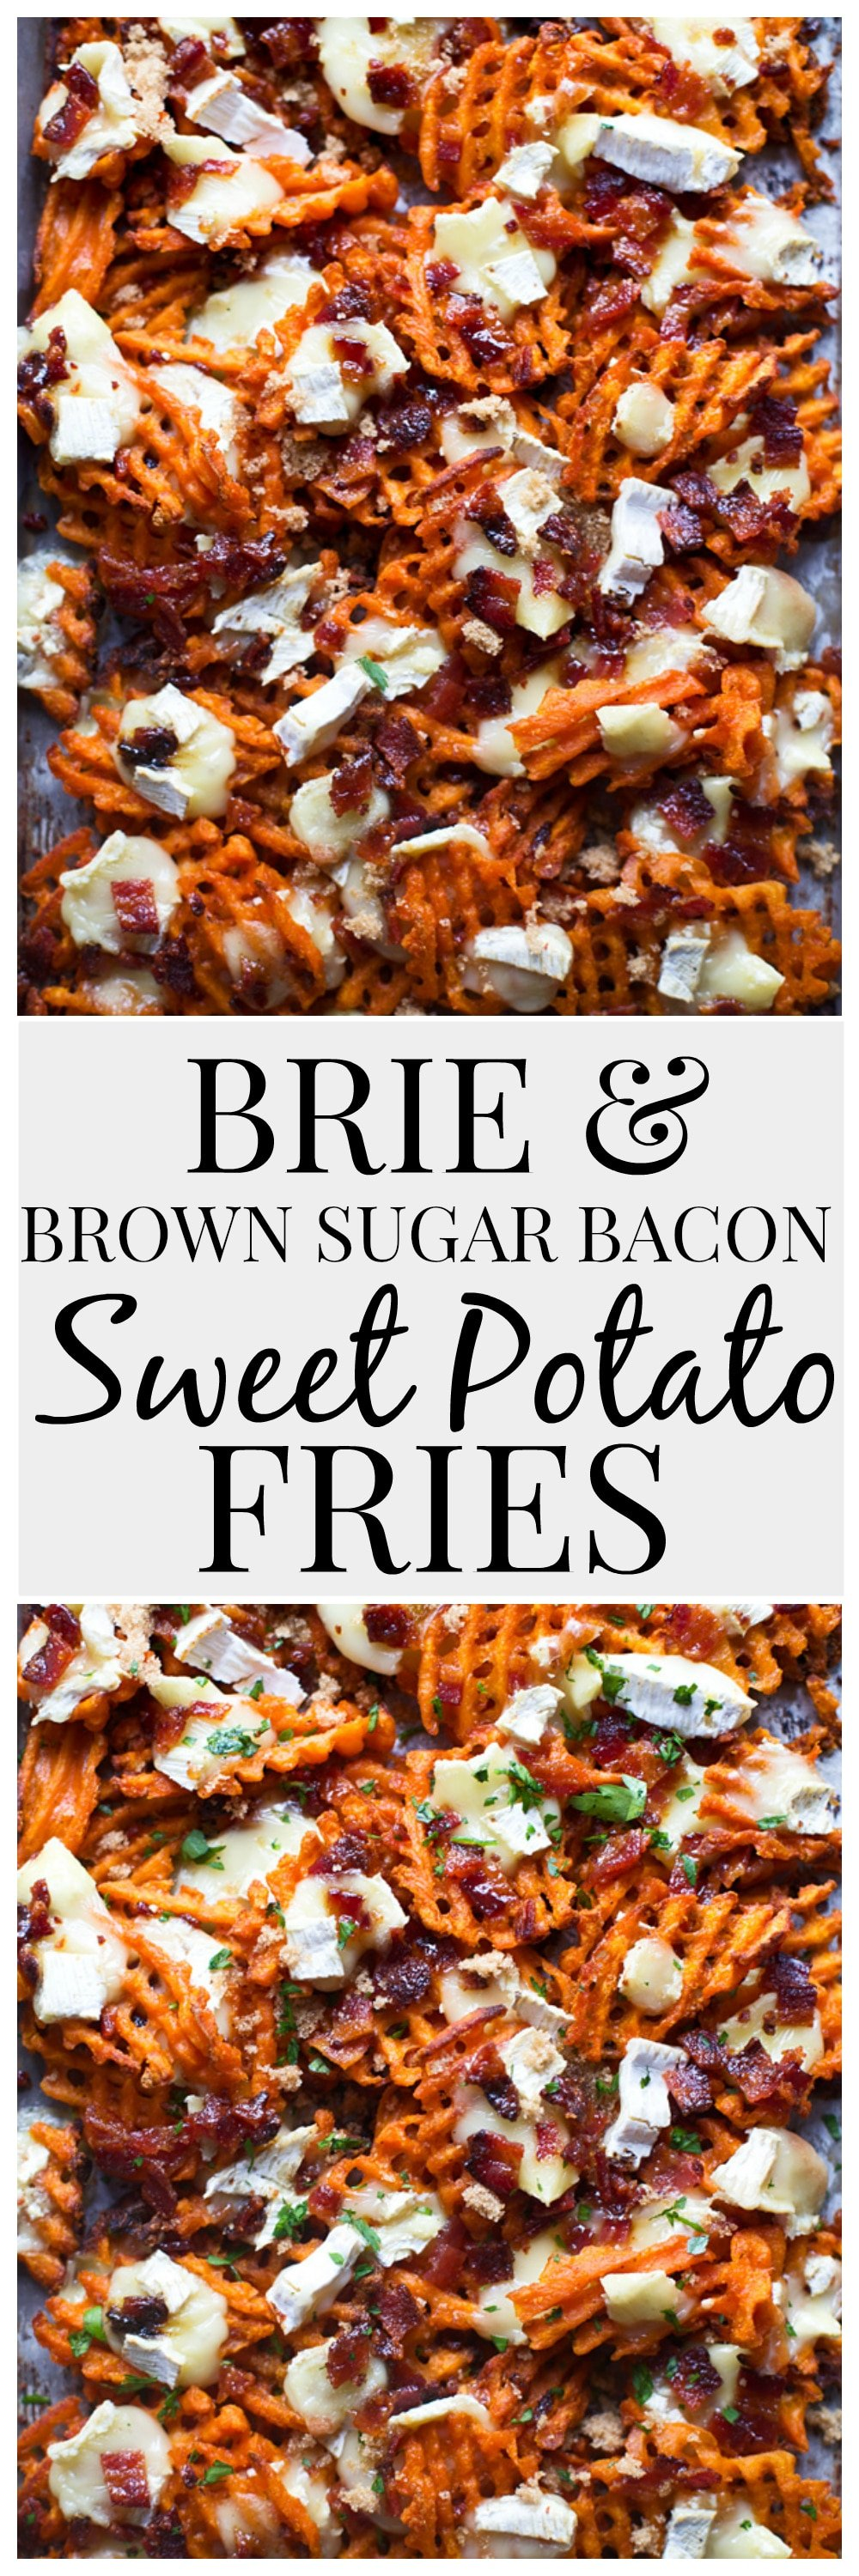 Brie & Brown Sugar Bacon Sweet Potato Fries